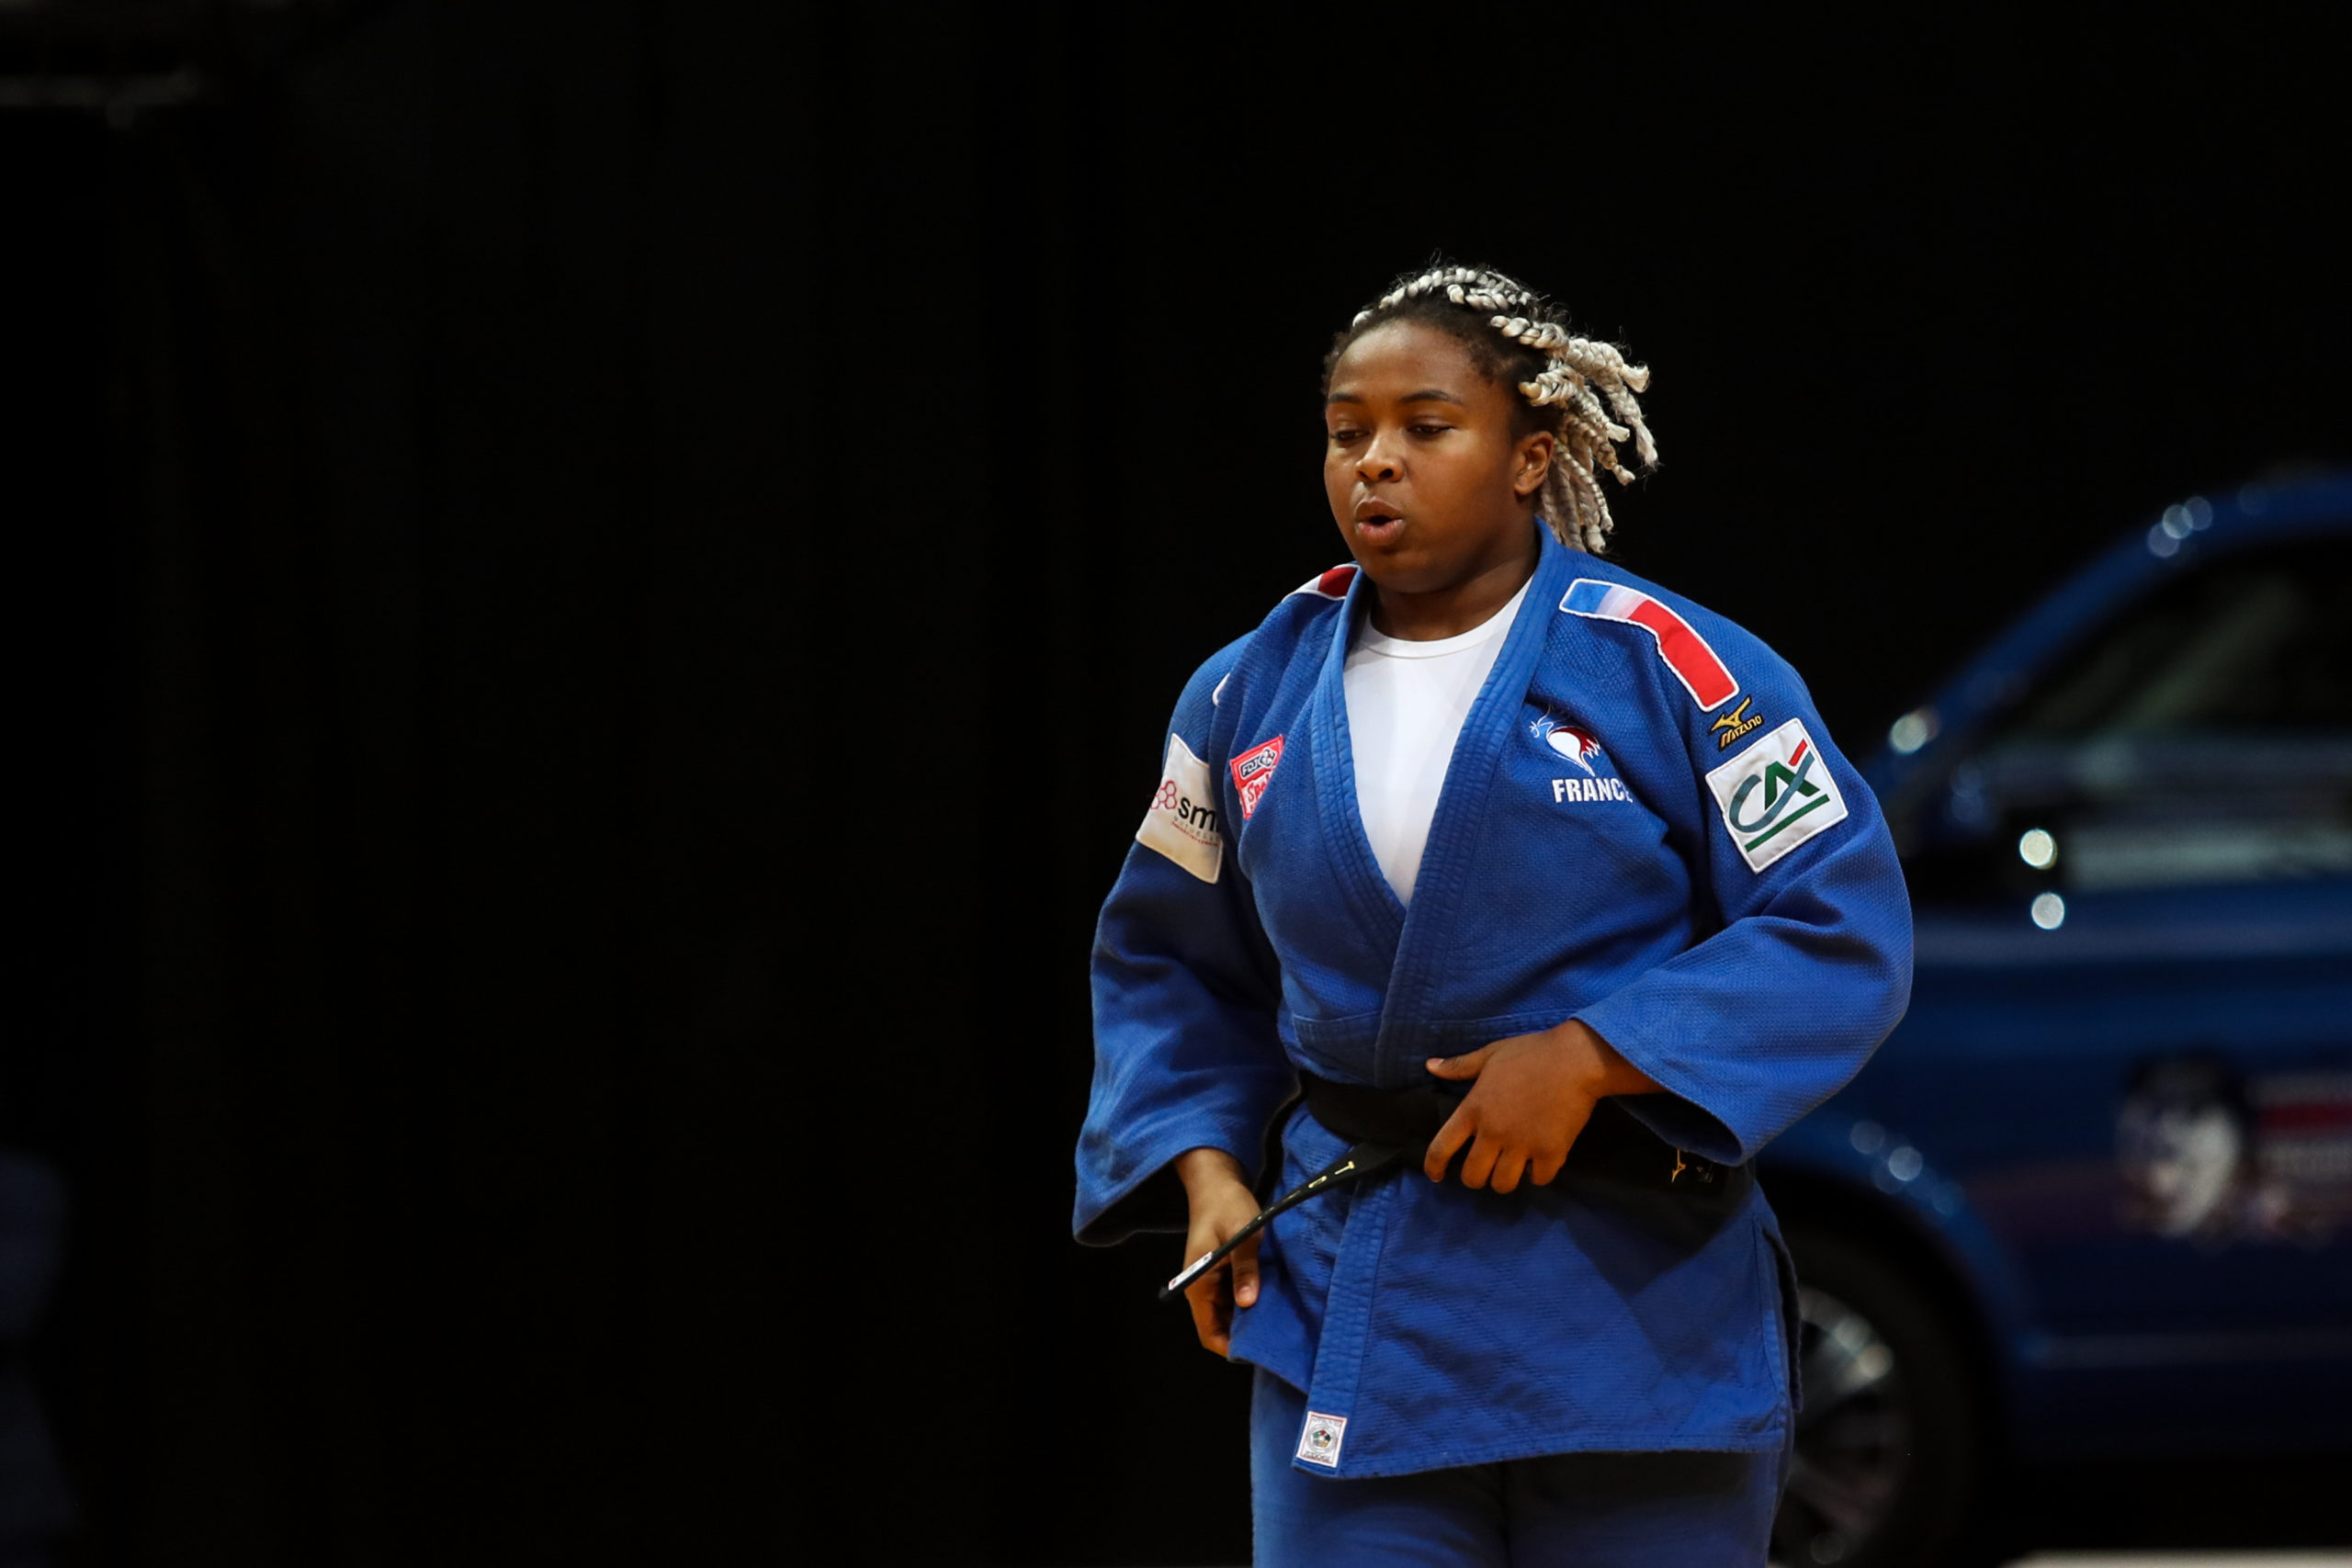 MALONGA AND DICKO COMPLETE FIVE-COUNT GOLD HAUL FOR FRENCH